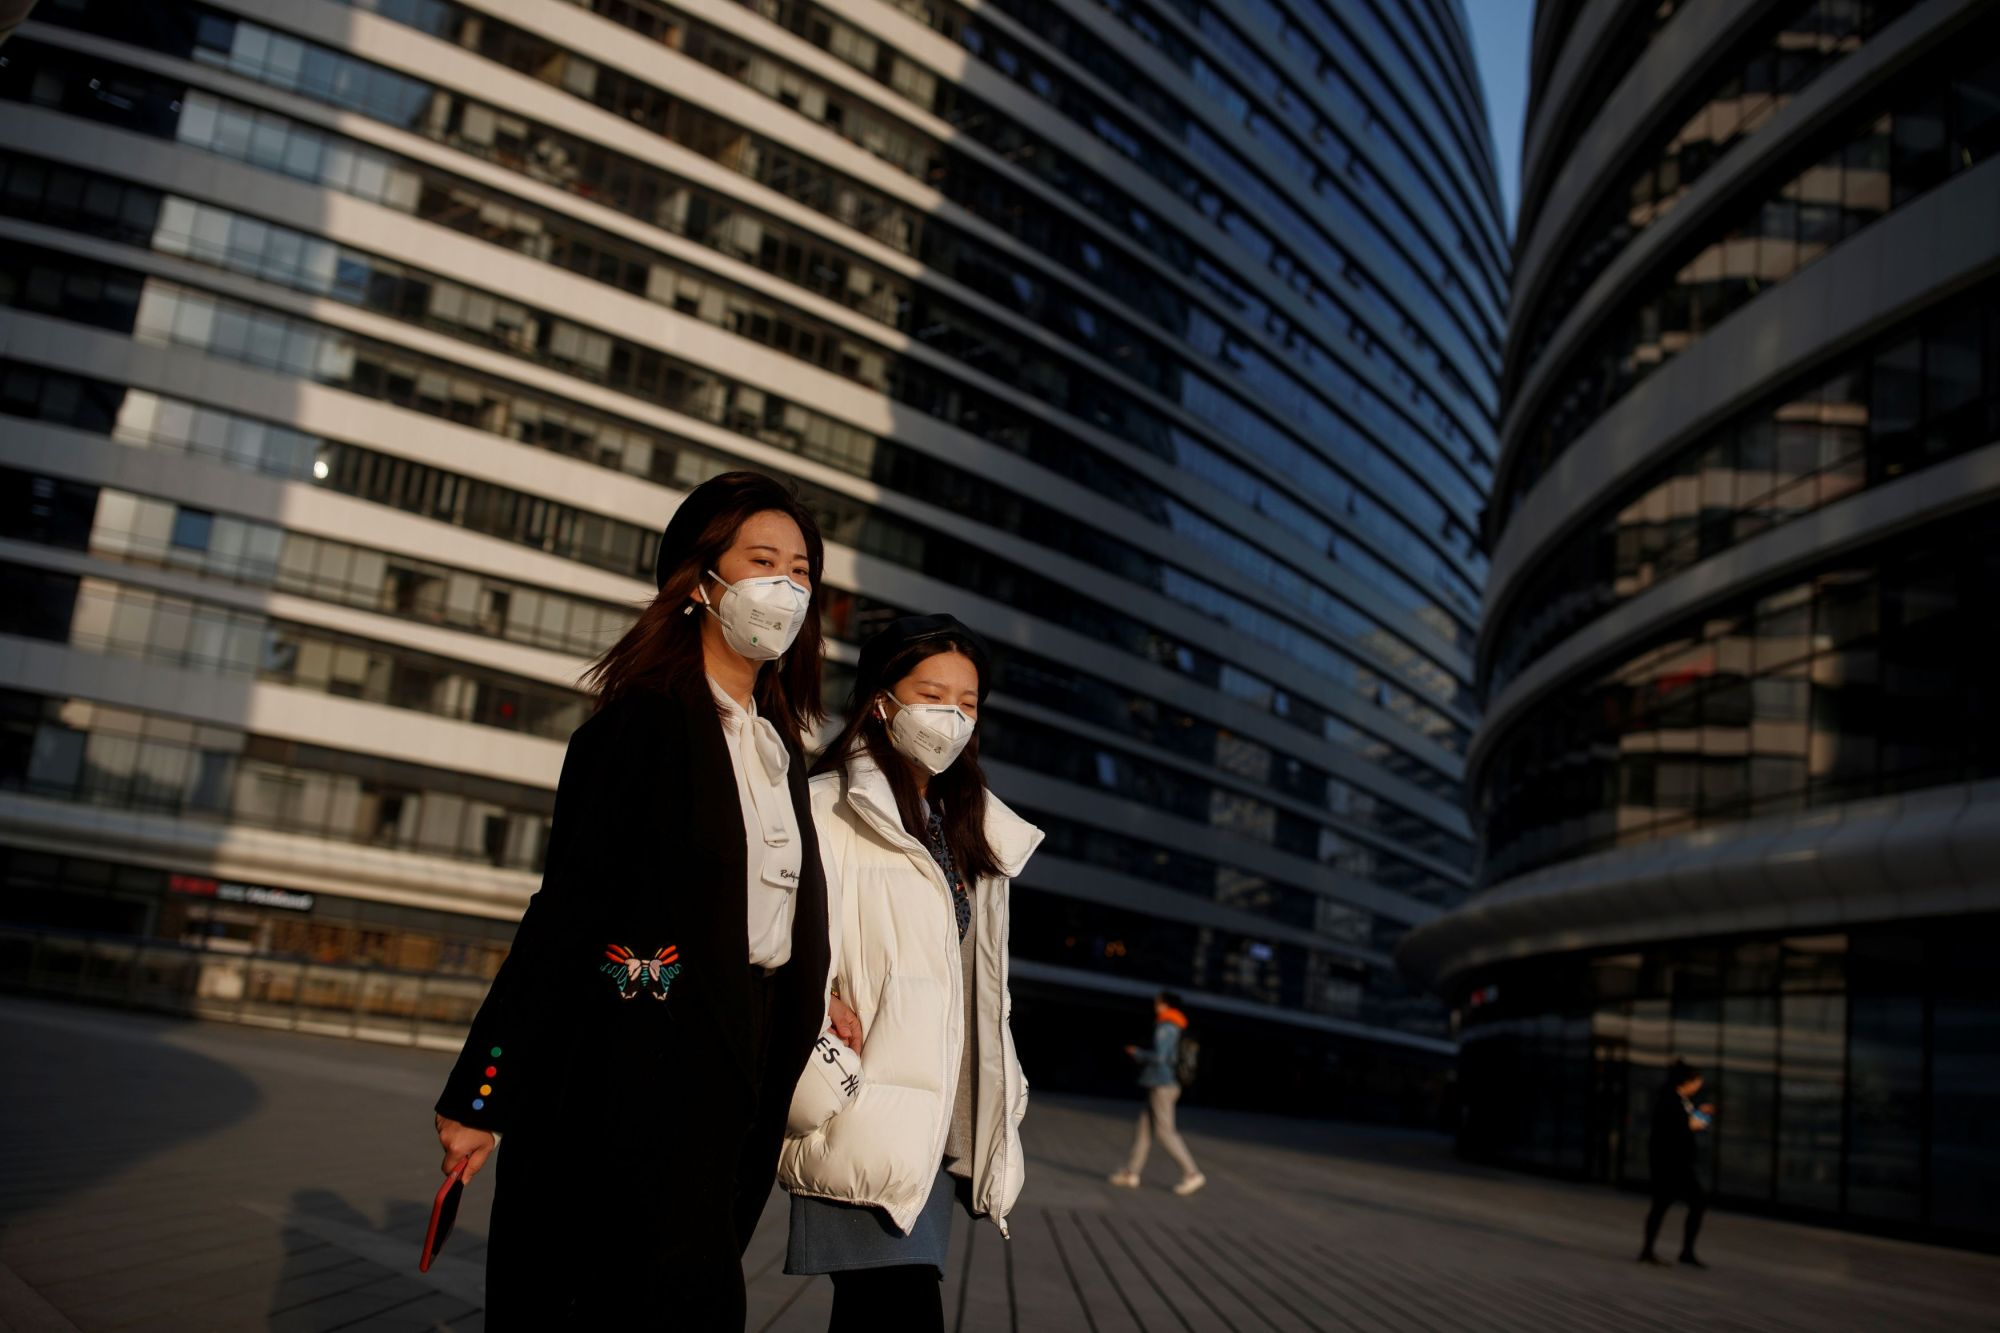 There are already signs that Beijing, impatient to reboot China's economy following the impact of COVID-19, will rain down cash on carbon-intensive infrastructure projects. | REUTERS